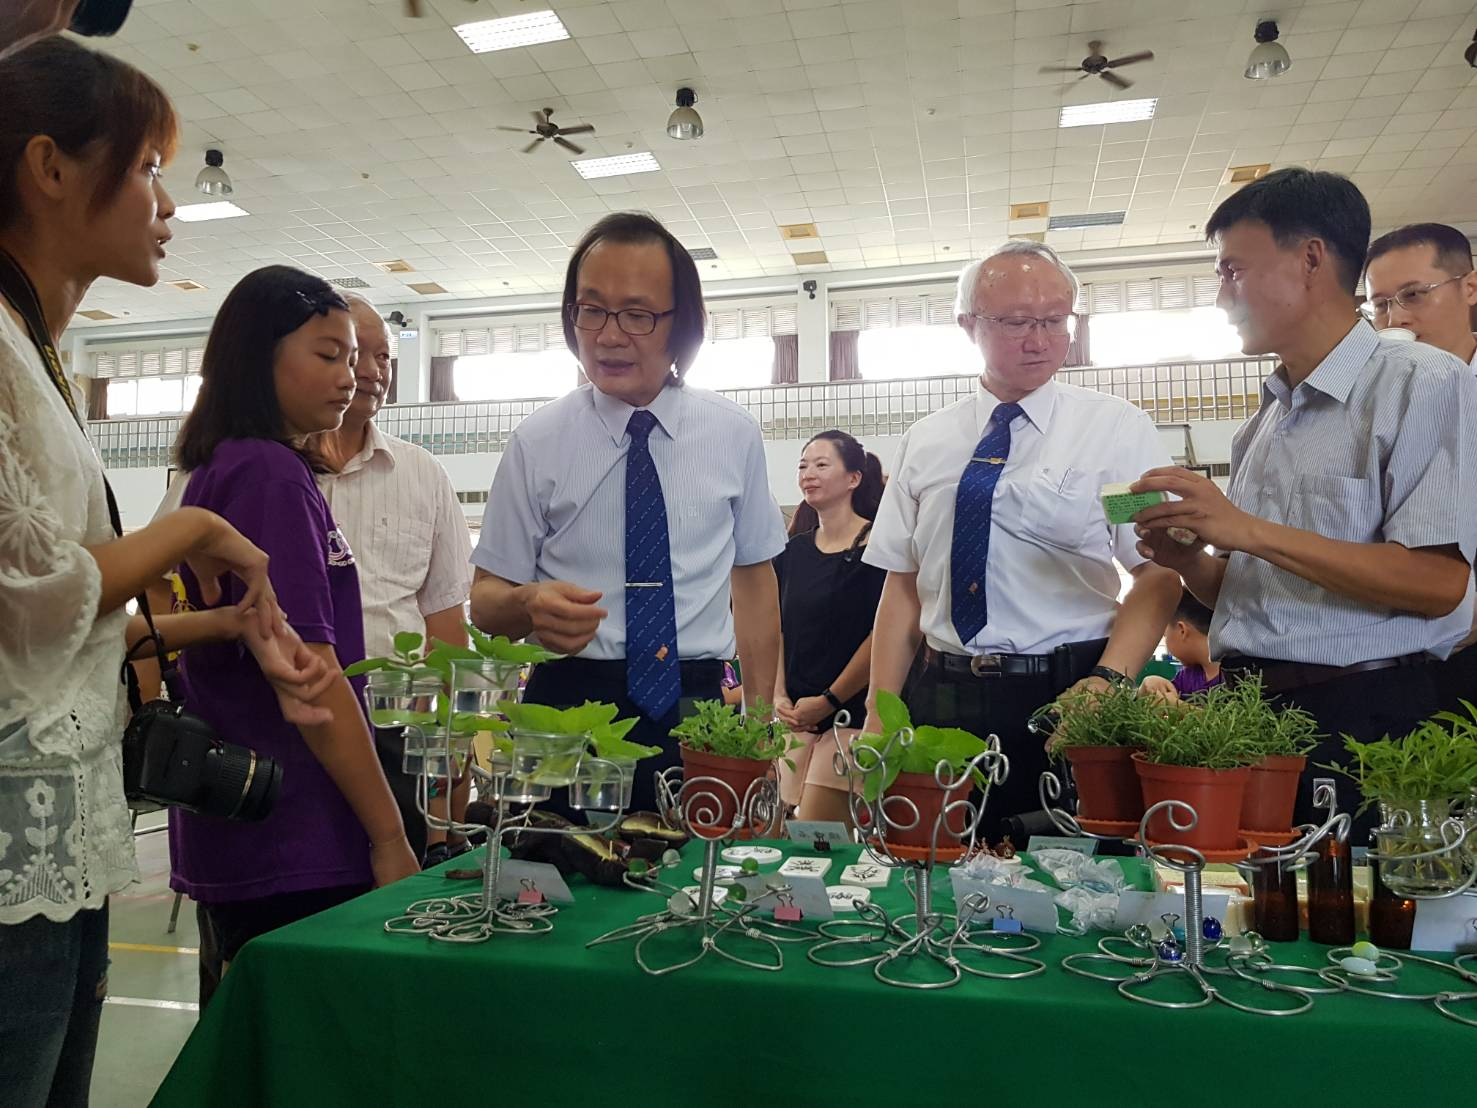 Teachers of Tung-Shih Elementary School explained on the herb planting and application results.